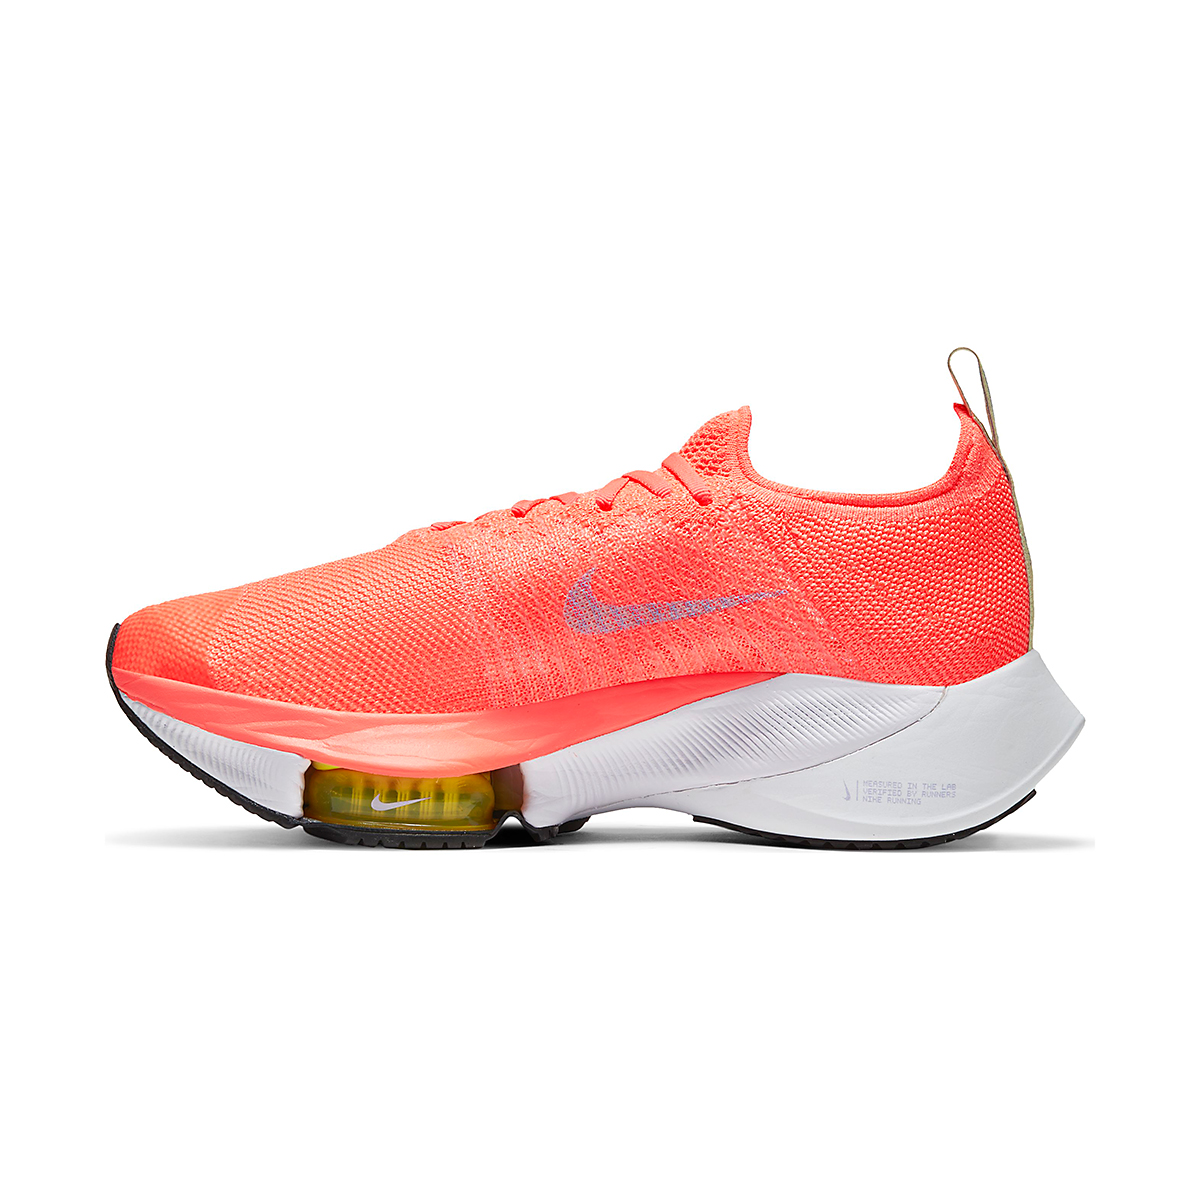 Women's Nike Air Zoom Tempo NEXT% Running Shoe - Color: Bright Mango/Purple Pulse-White - Size: 5.5 - Width: Regular, Bright Mango/Purple Pulse-White, large, image 2